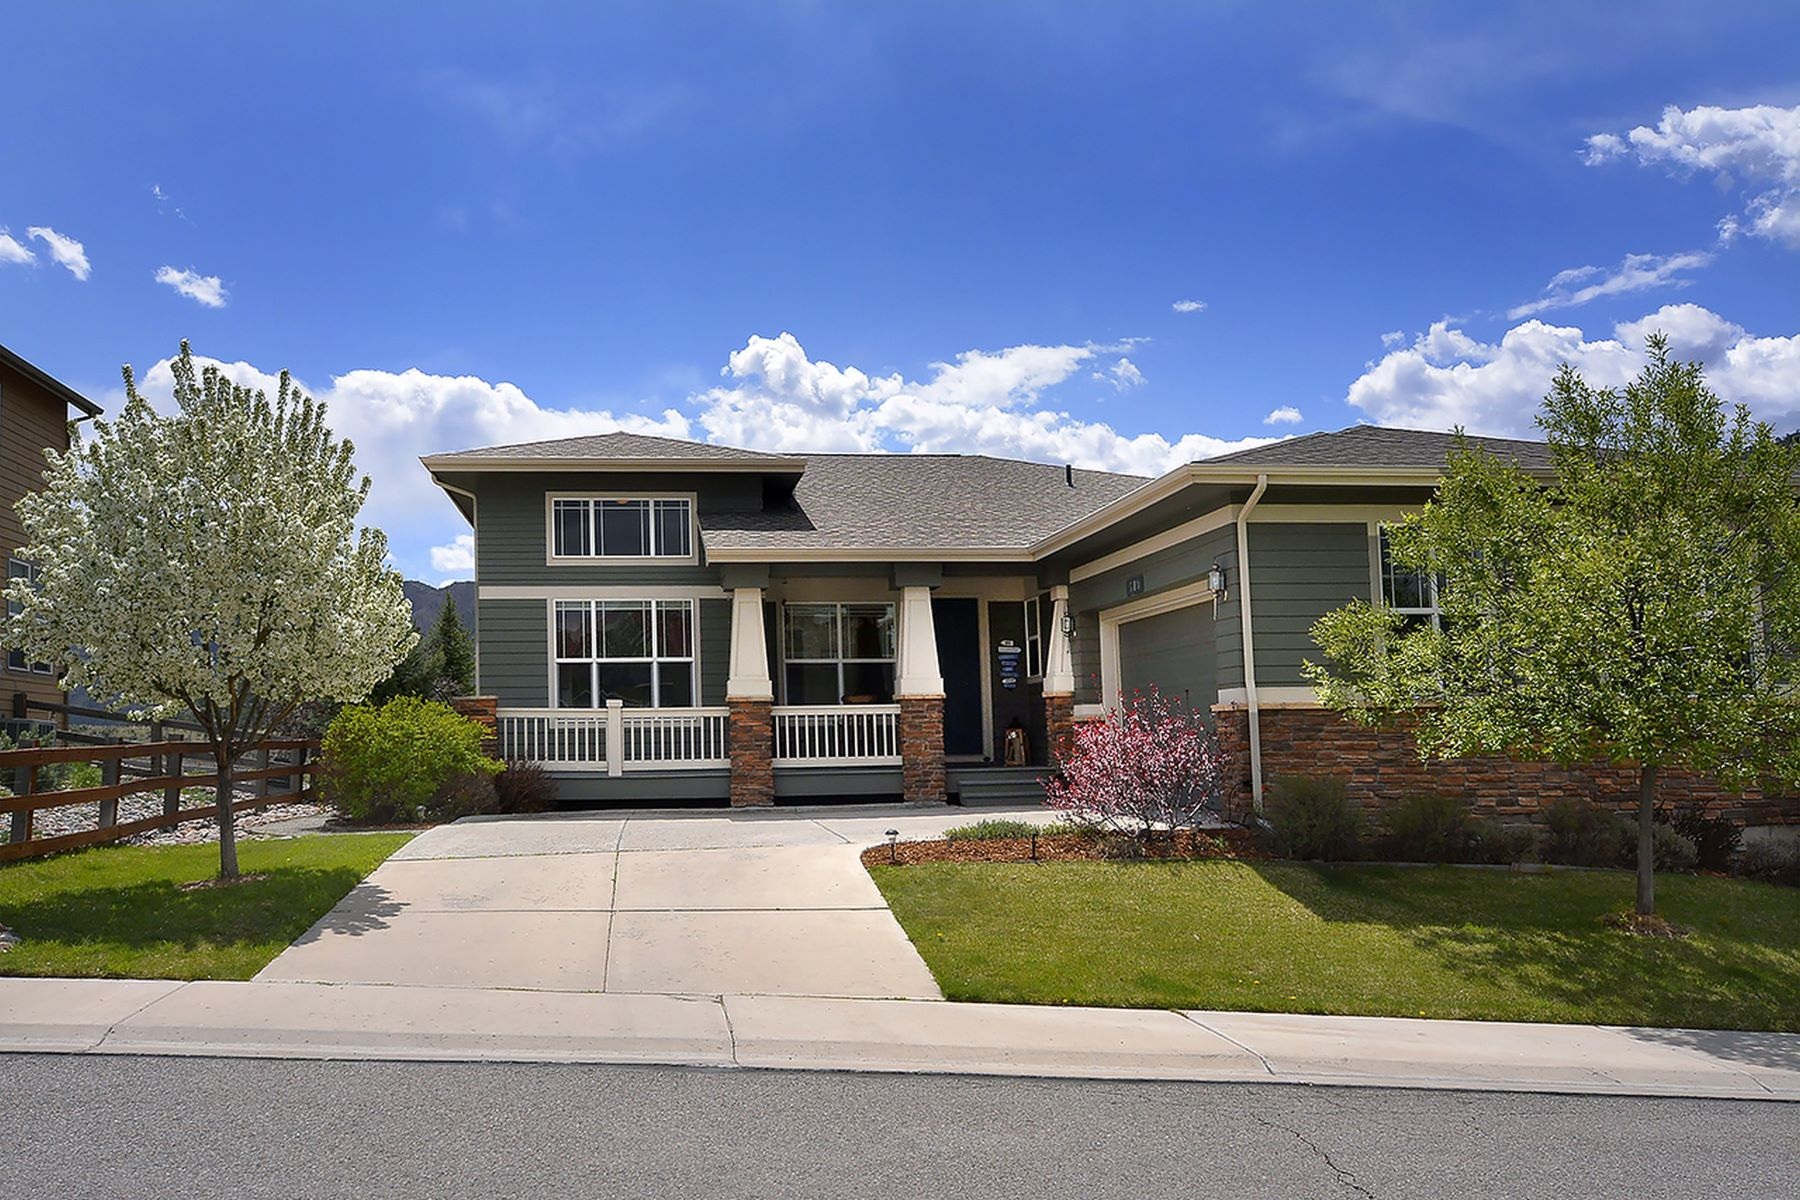 Single Family Home for Active at Castle Valley Ranch 519 S. Wildhorse Drive New Castle, Colorado 81647 United States